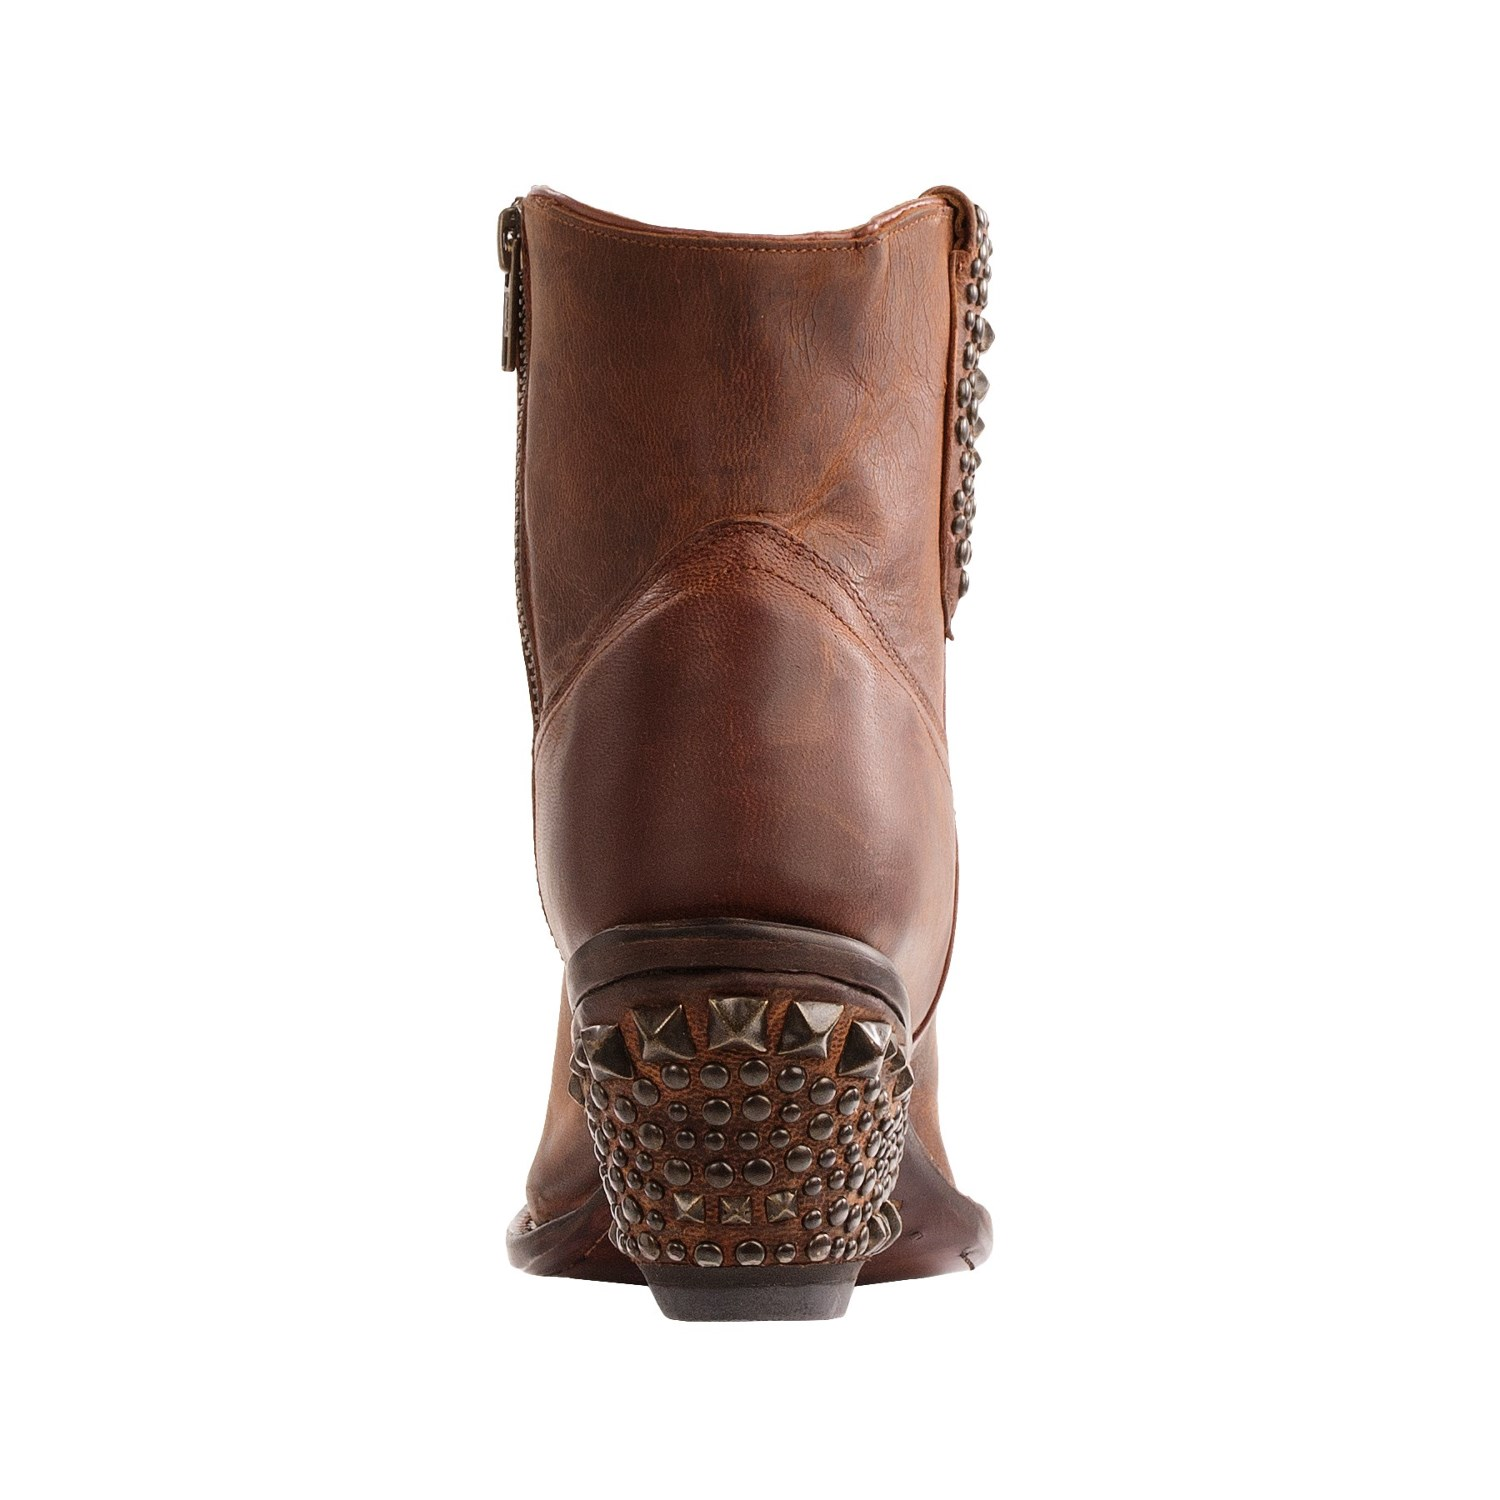 Awesome Lucchese M5618 Womens Tan Burnished Brown Ostrich Leg Western Cowboy Boots | EBay